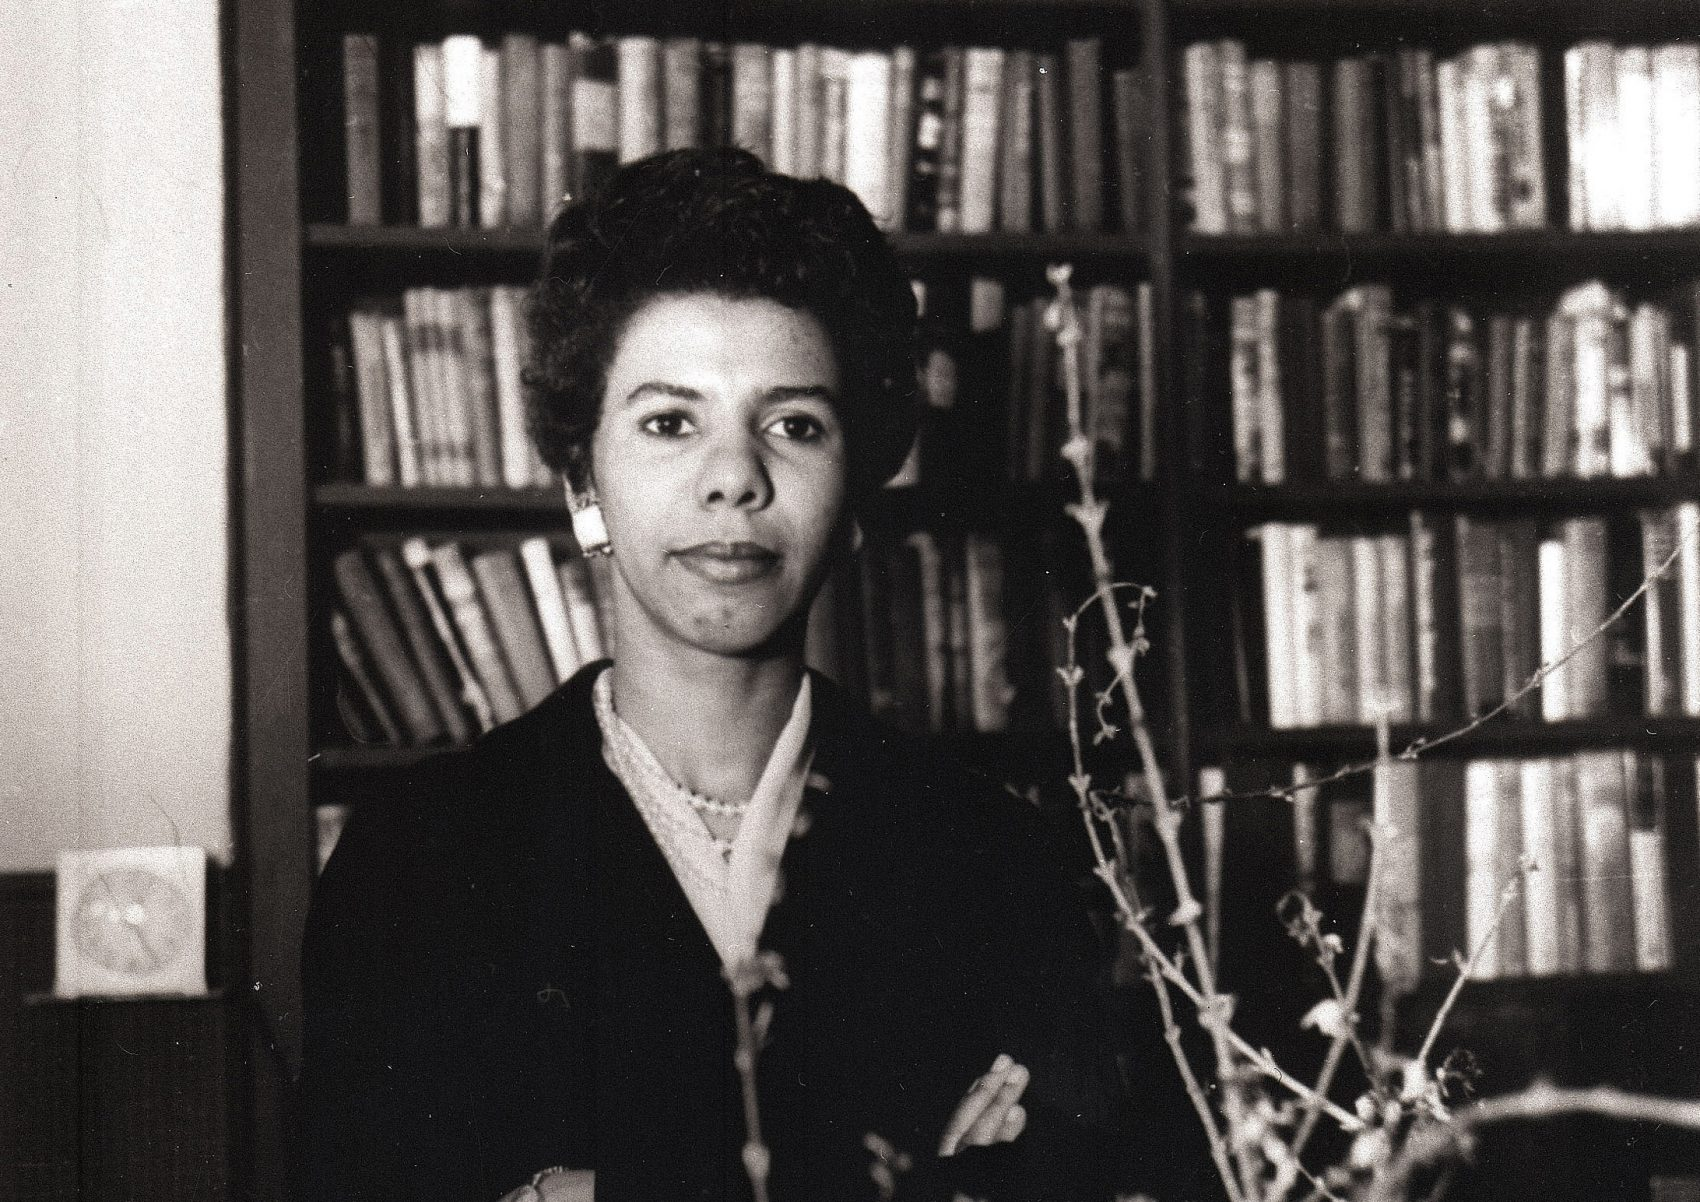 """In this January 1959 file photo, author and playwright Lorraine Hansberry poses for a photo. The author of """"A Raisin in the Sun"""" will be inducted into the National Women's Hall of Fame as part of the 10-member class of 2017 on Saturday, Sept. 16, 2017 (David Attie/Getty via AP)"""